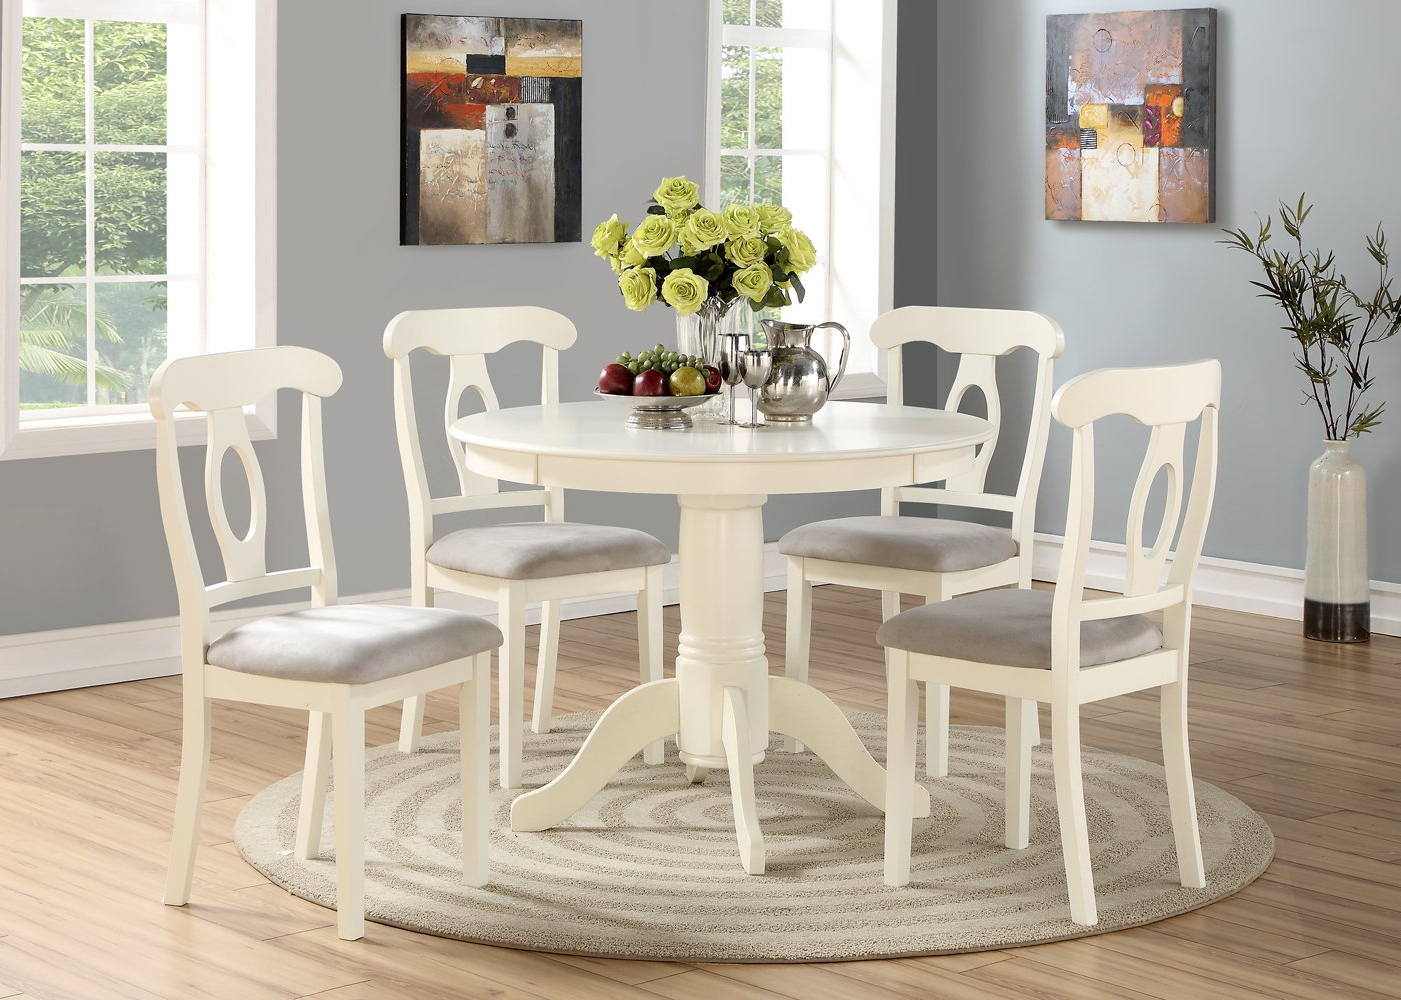 Mulvey 5 Piece Dining Sets For Favorite Angel Line 23511 21 5 Piece Lindsey Dining Set, White/gray (View 8 of 20)